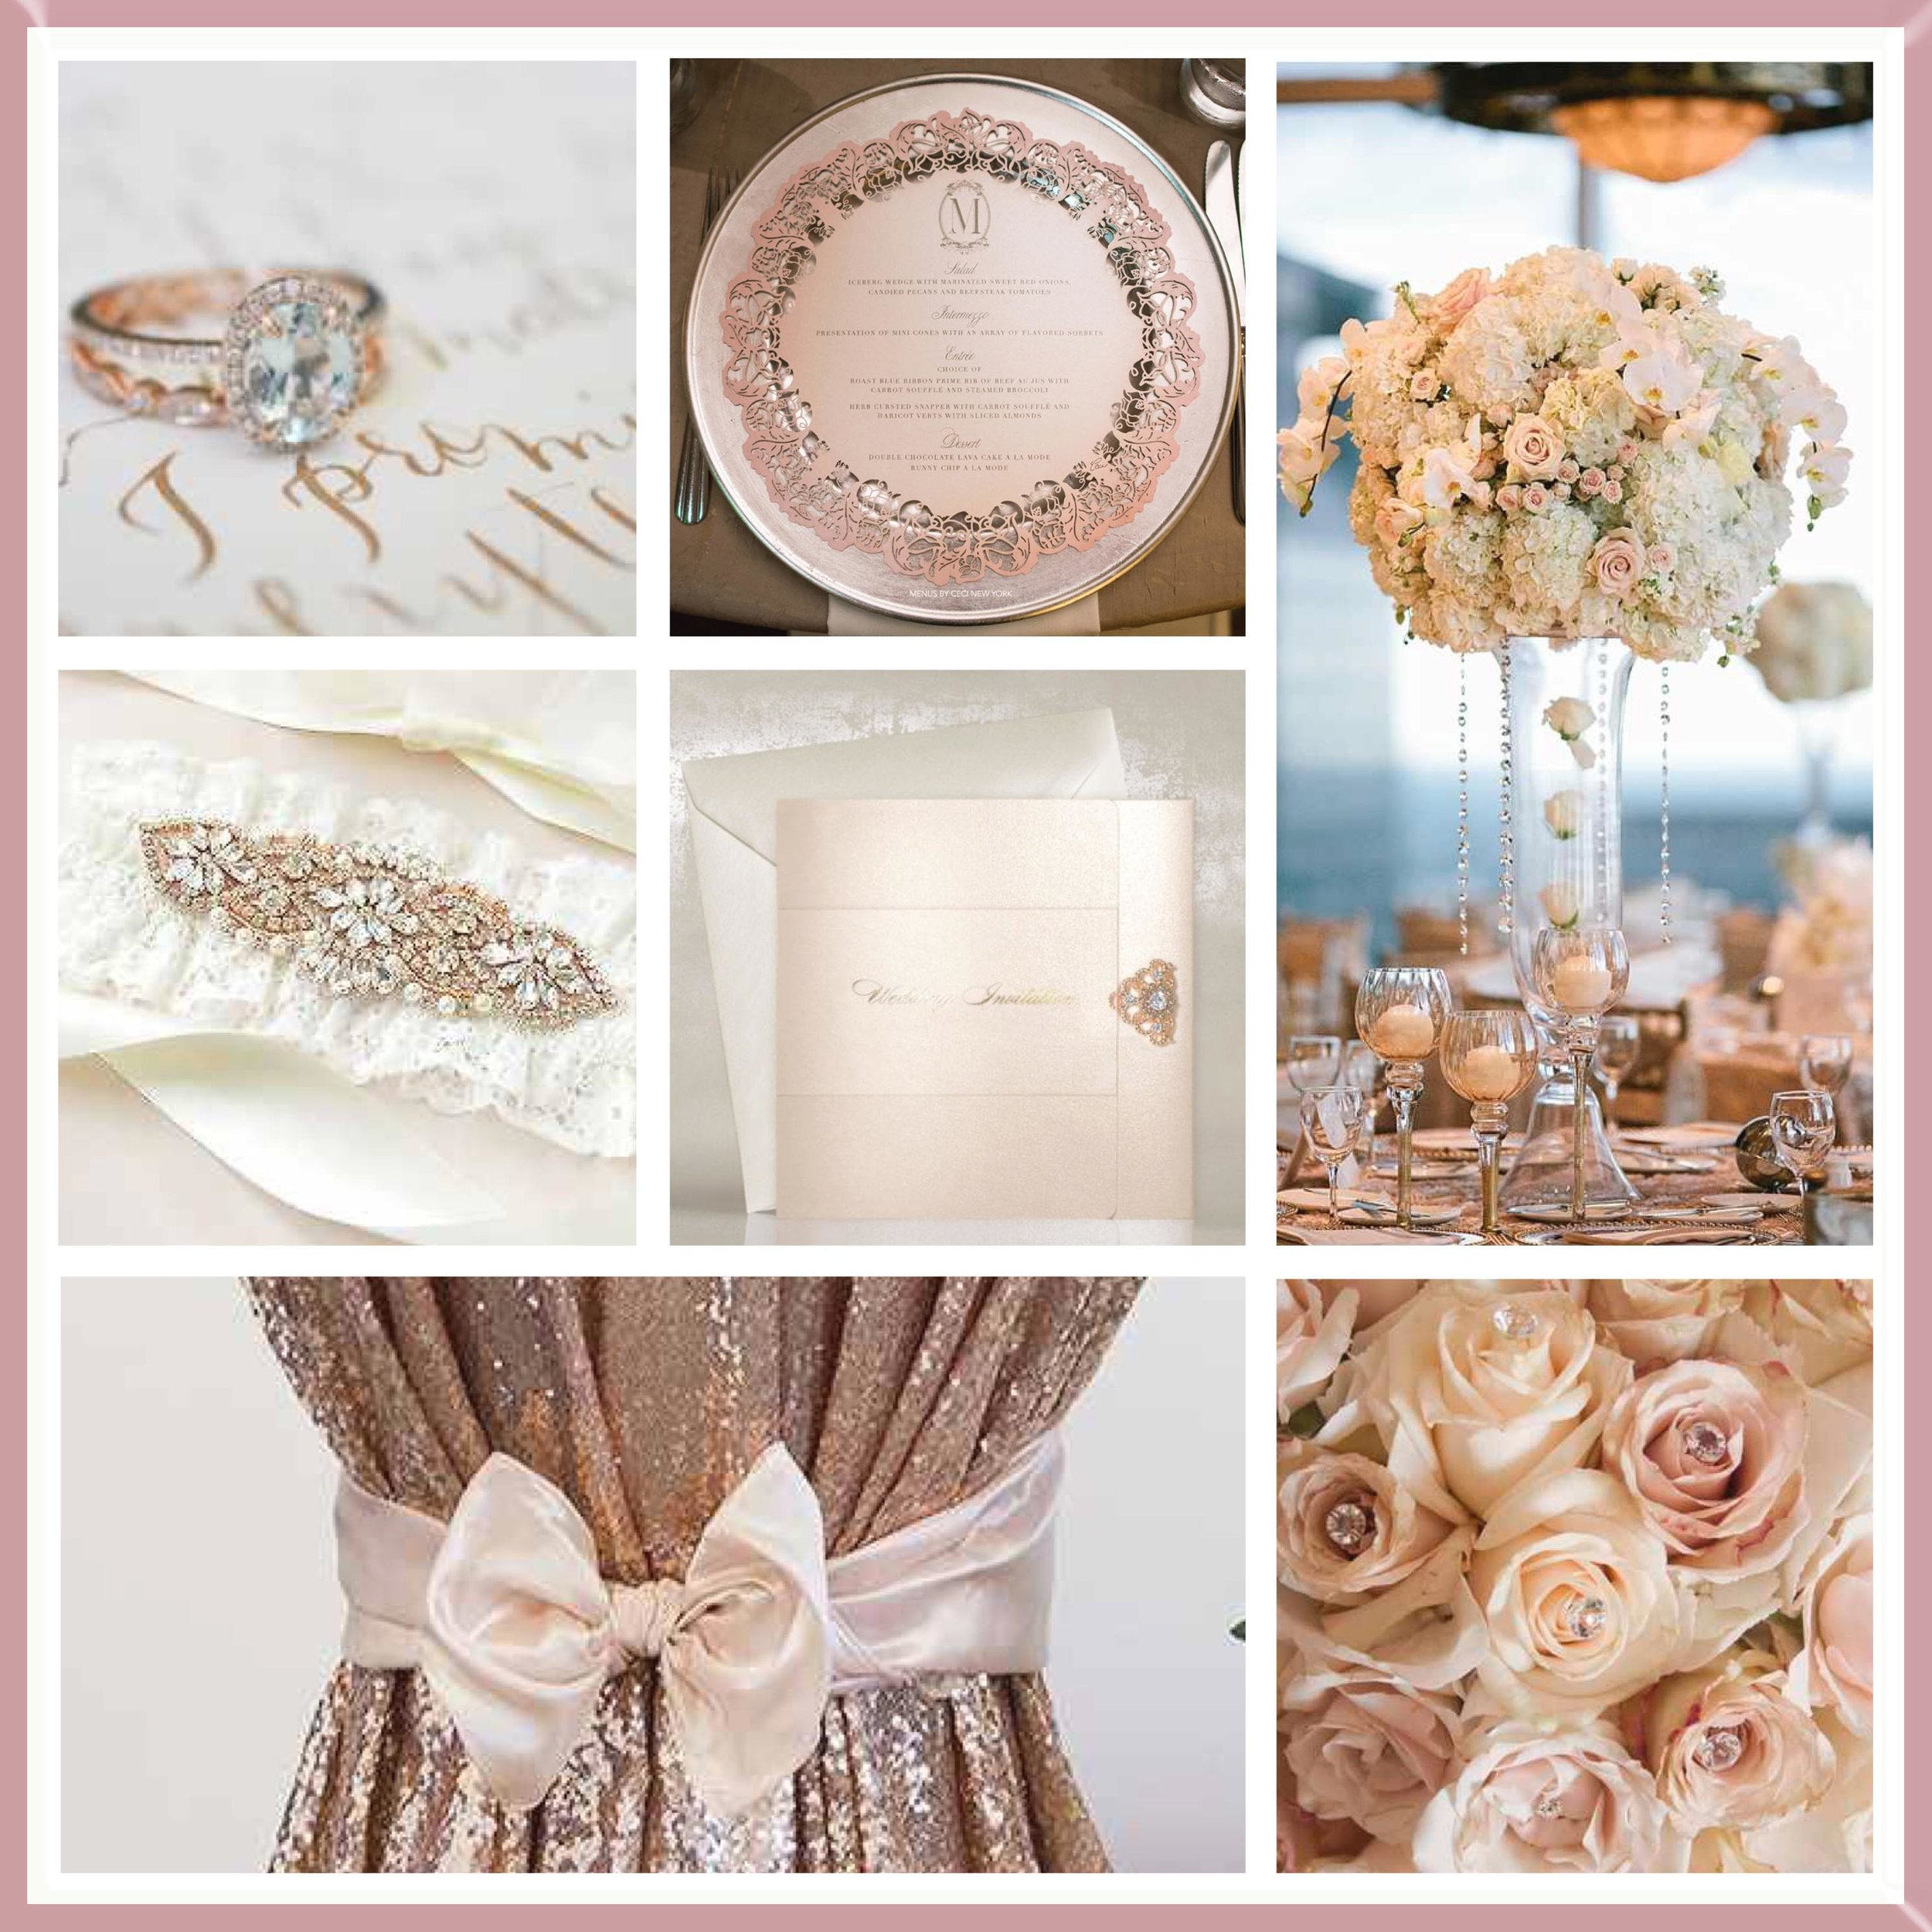 Ivory & Rose Gold wedding mood board designed by Luxe by Minihaha & co.